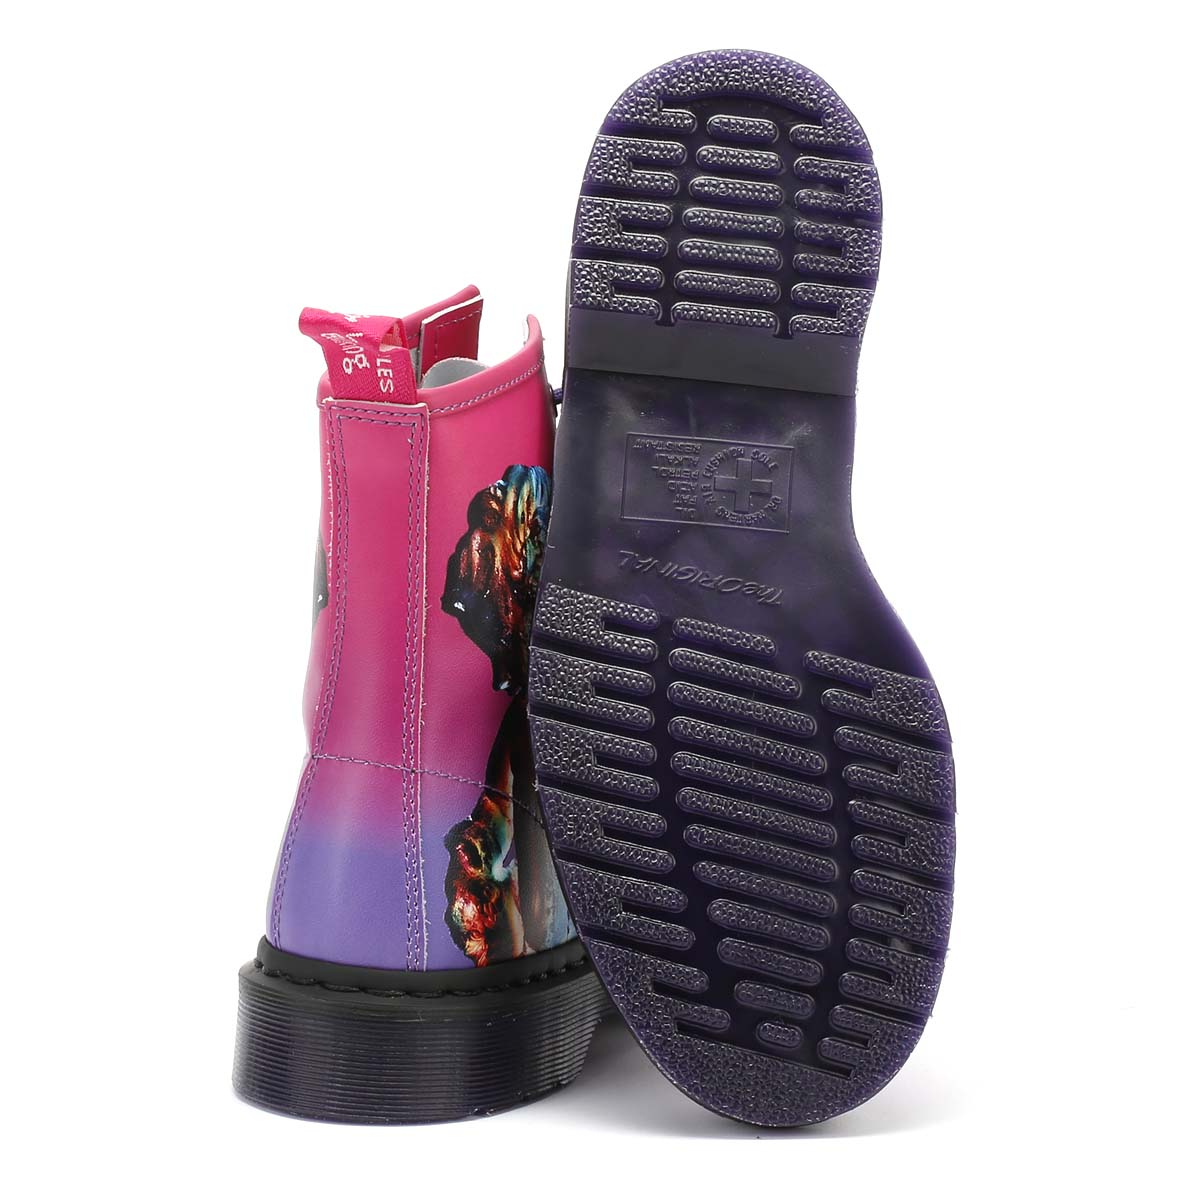 Dr. Martens Unisex Boots New New New Order Purple Backhand 1460 Technique Shoes 88ae07